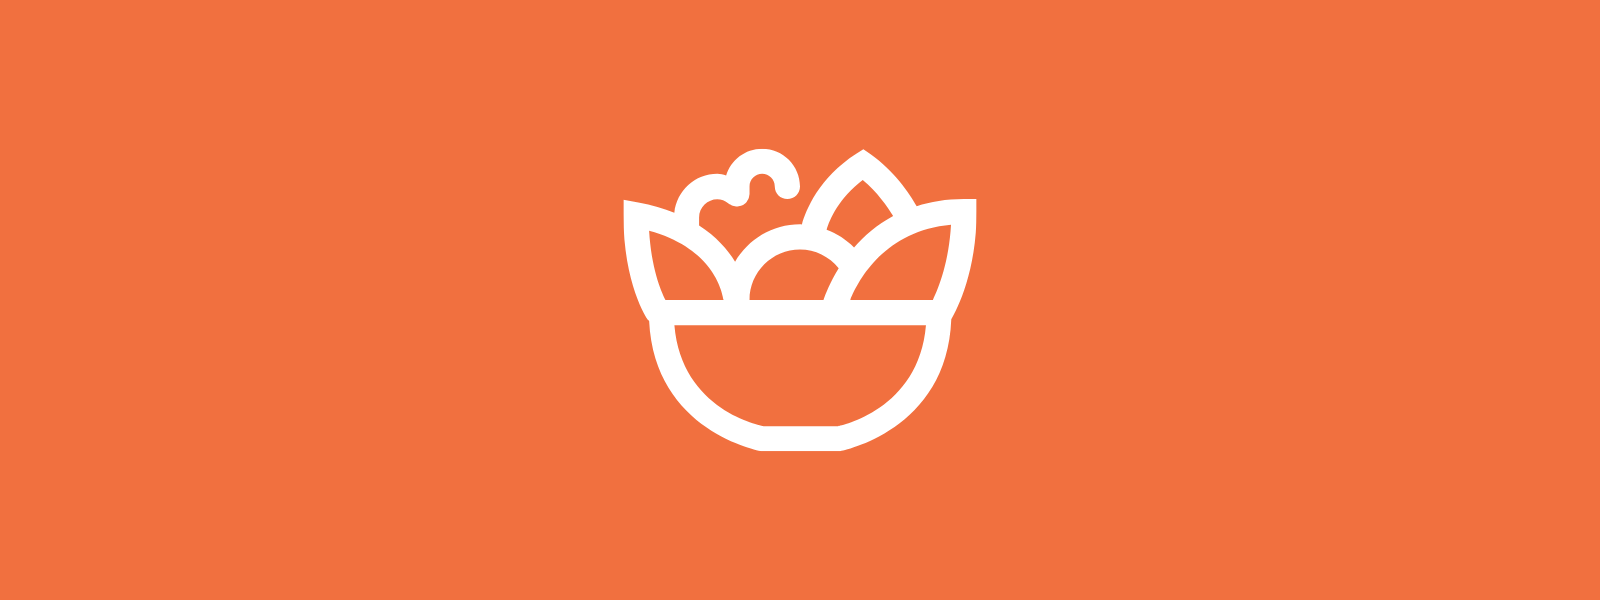 Icon background of a salad bowl